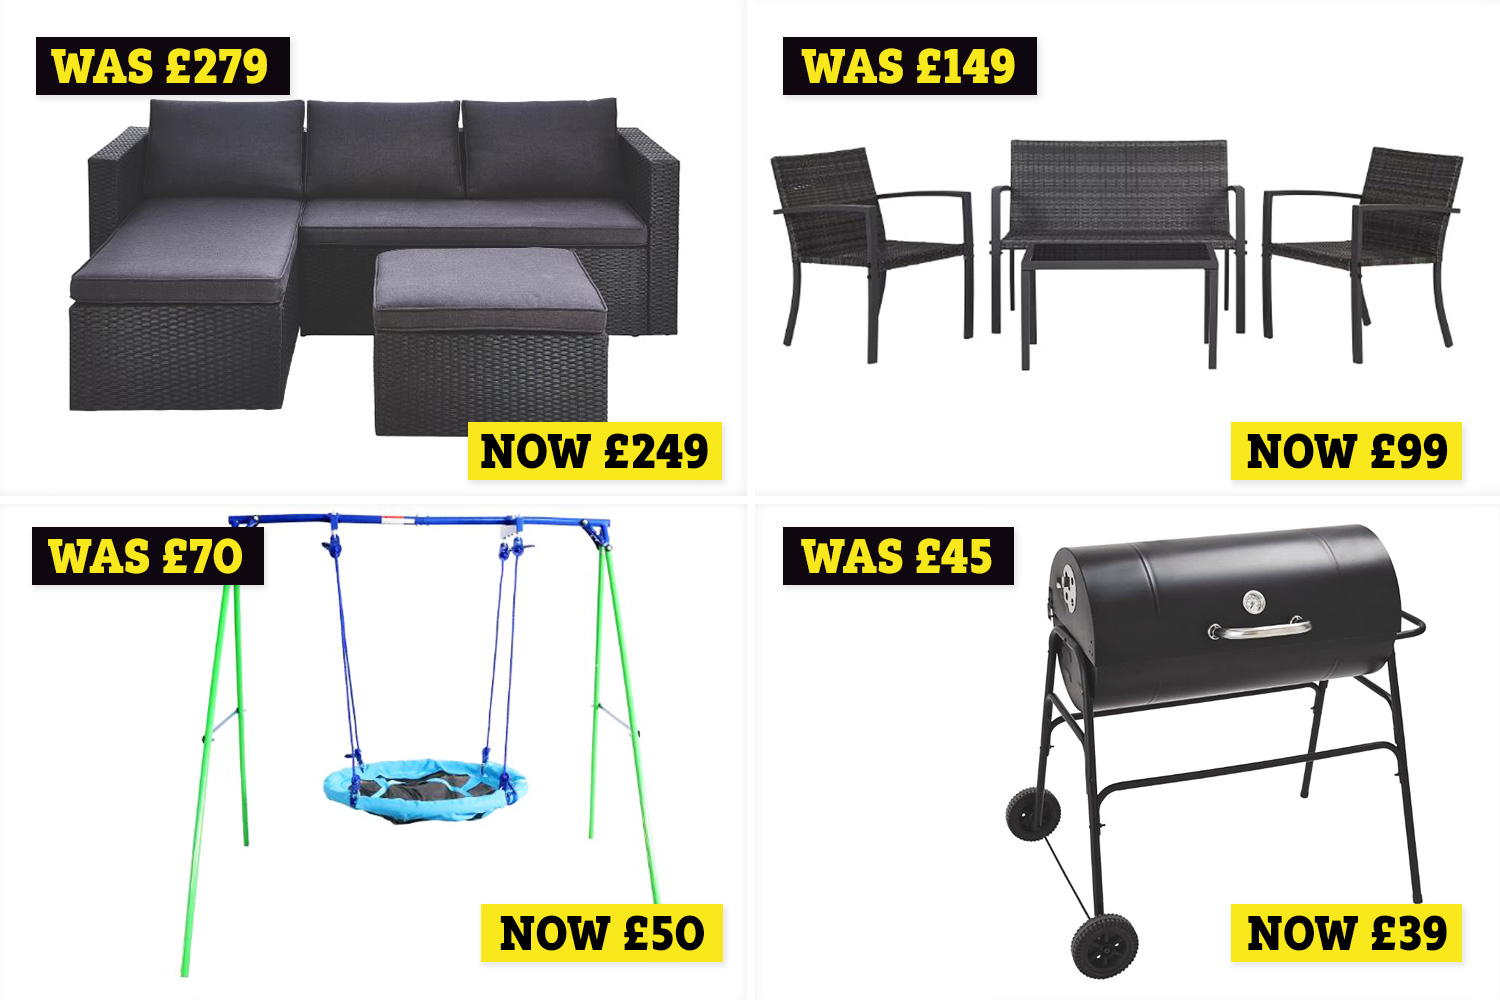 Asda Has A Garden Furniture Sale That Includes Sofa Sets Swings And Bbqs - Morrisons Garden Furniture Clearance